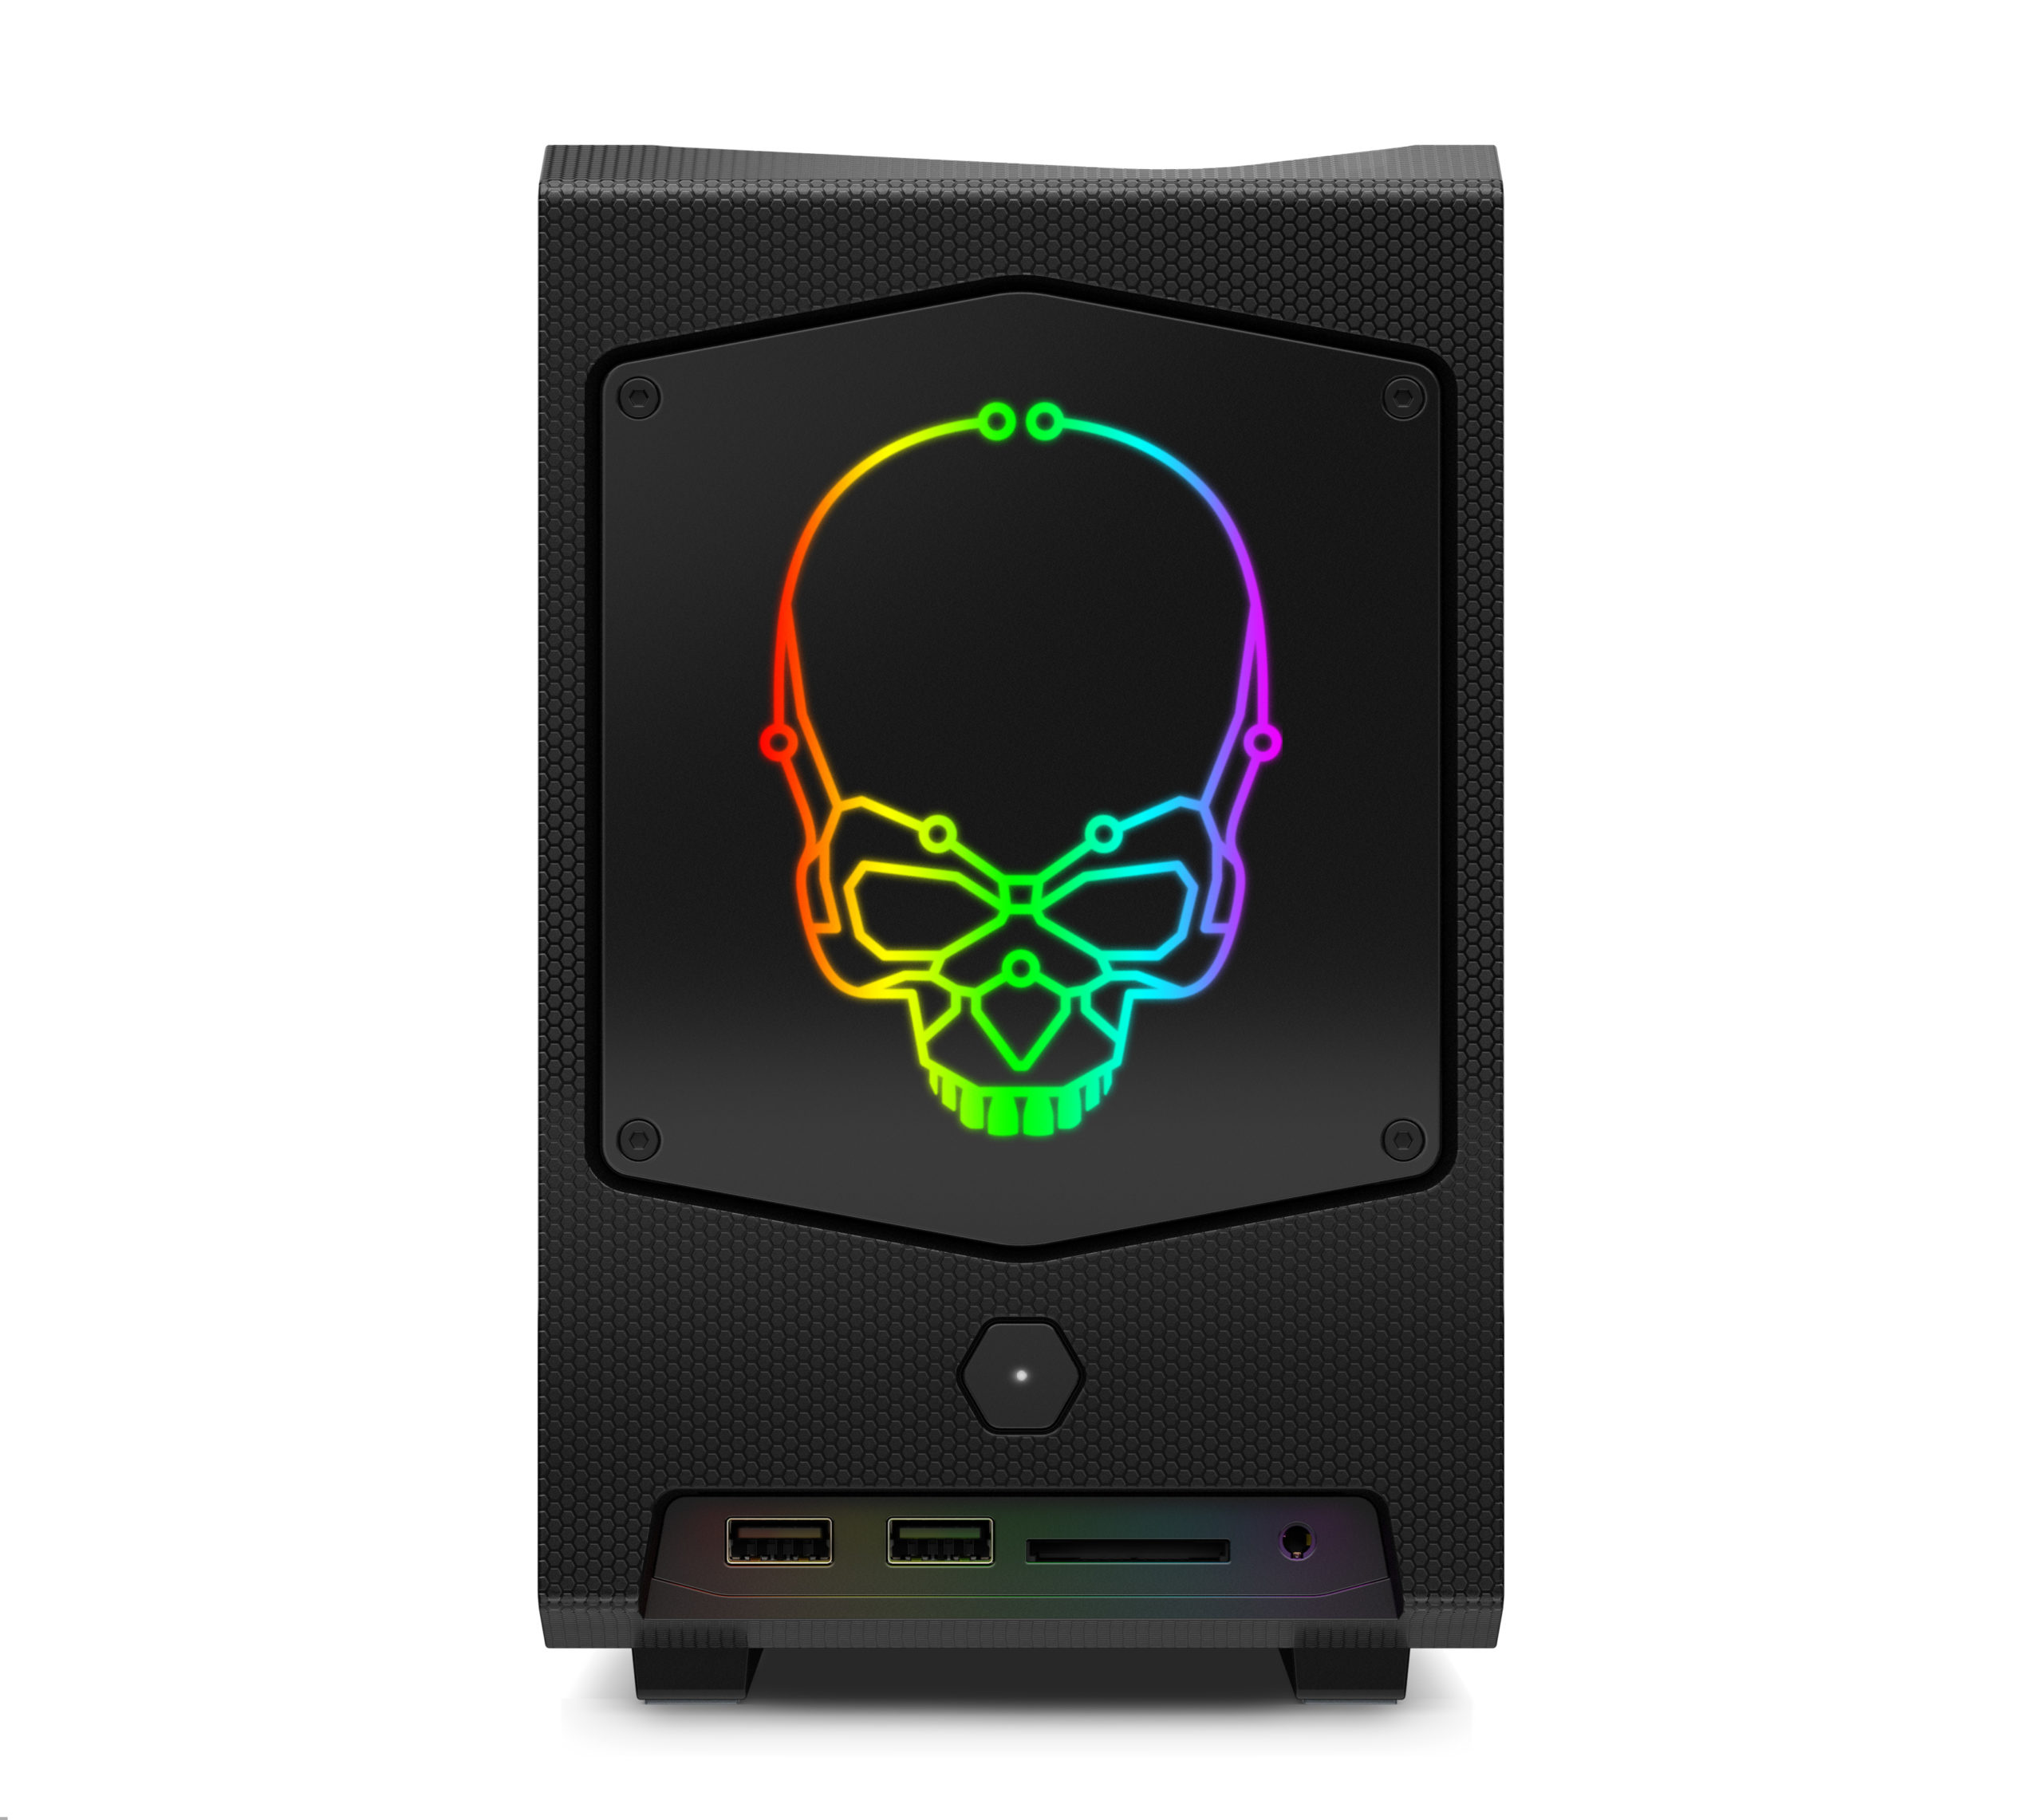 Intel® NUC 11 extreme – front straight with rgb skull